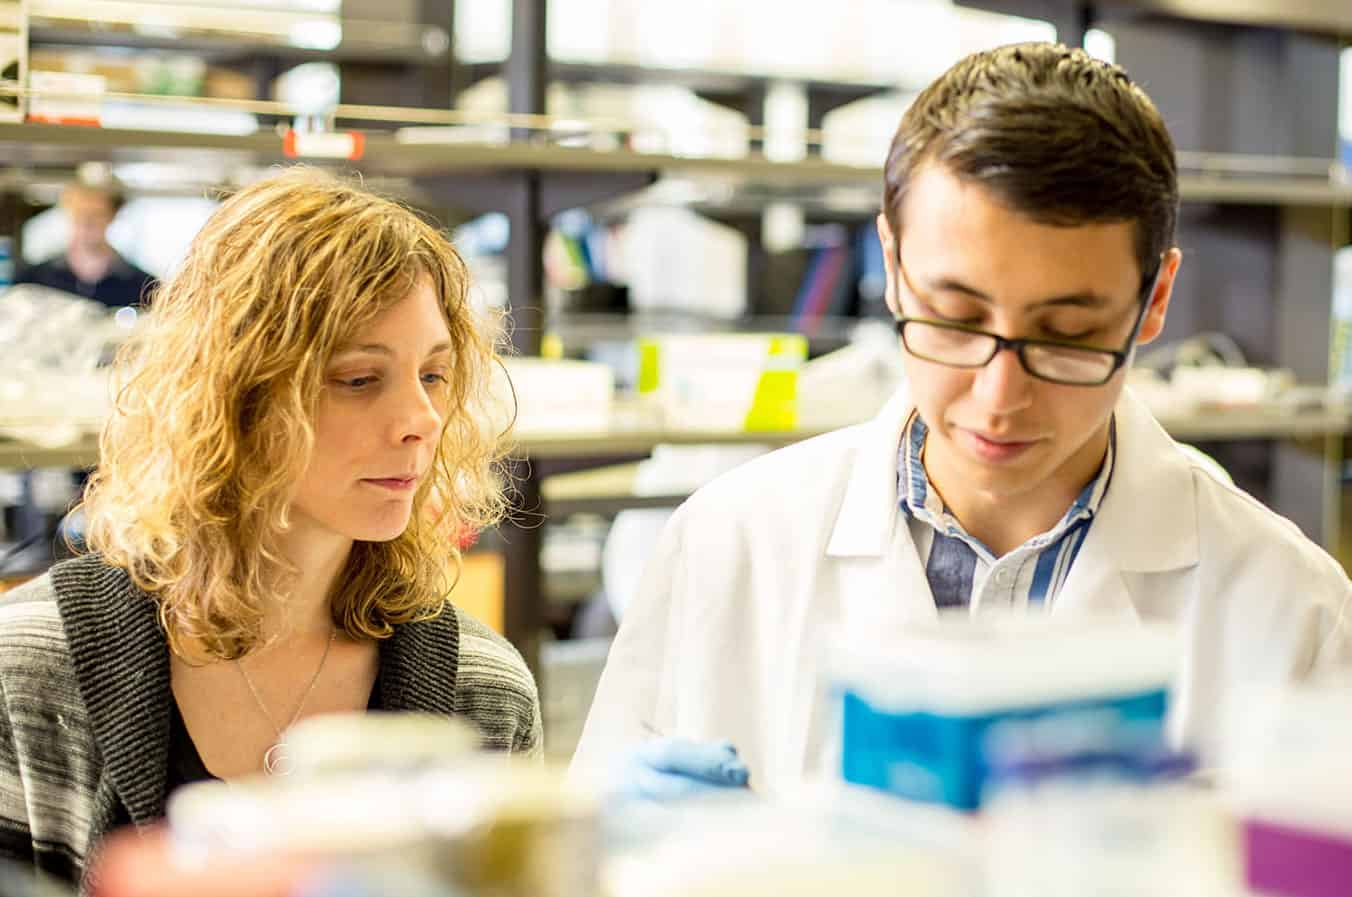 photo of Kelly Stevens and Daniel Corbett looking down at lab bench.